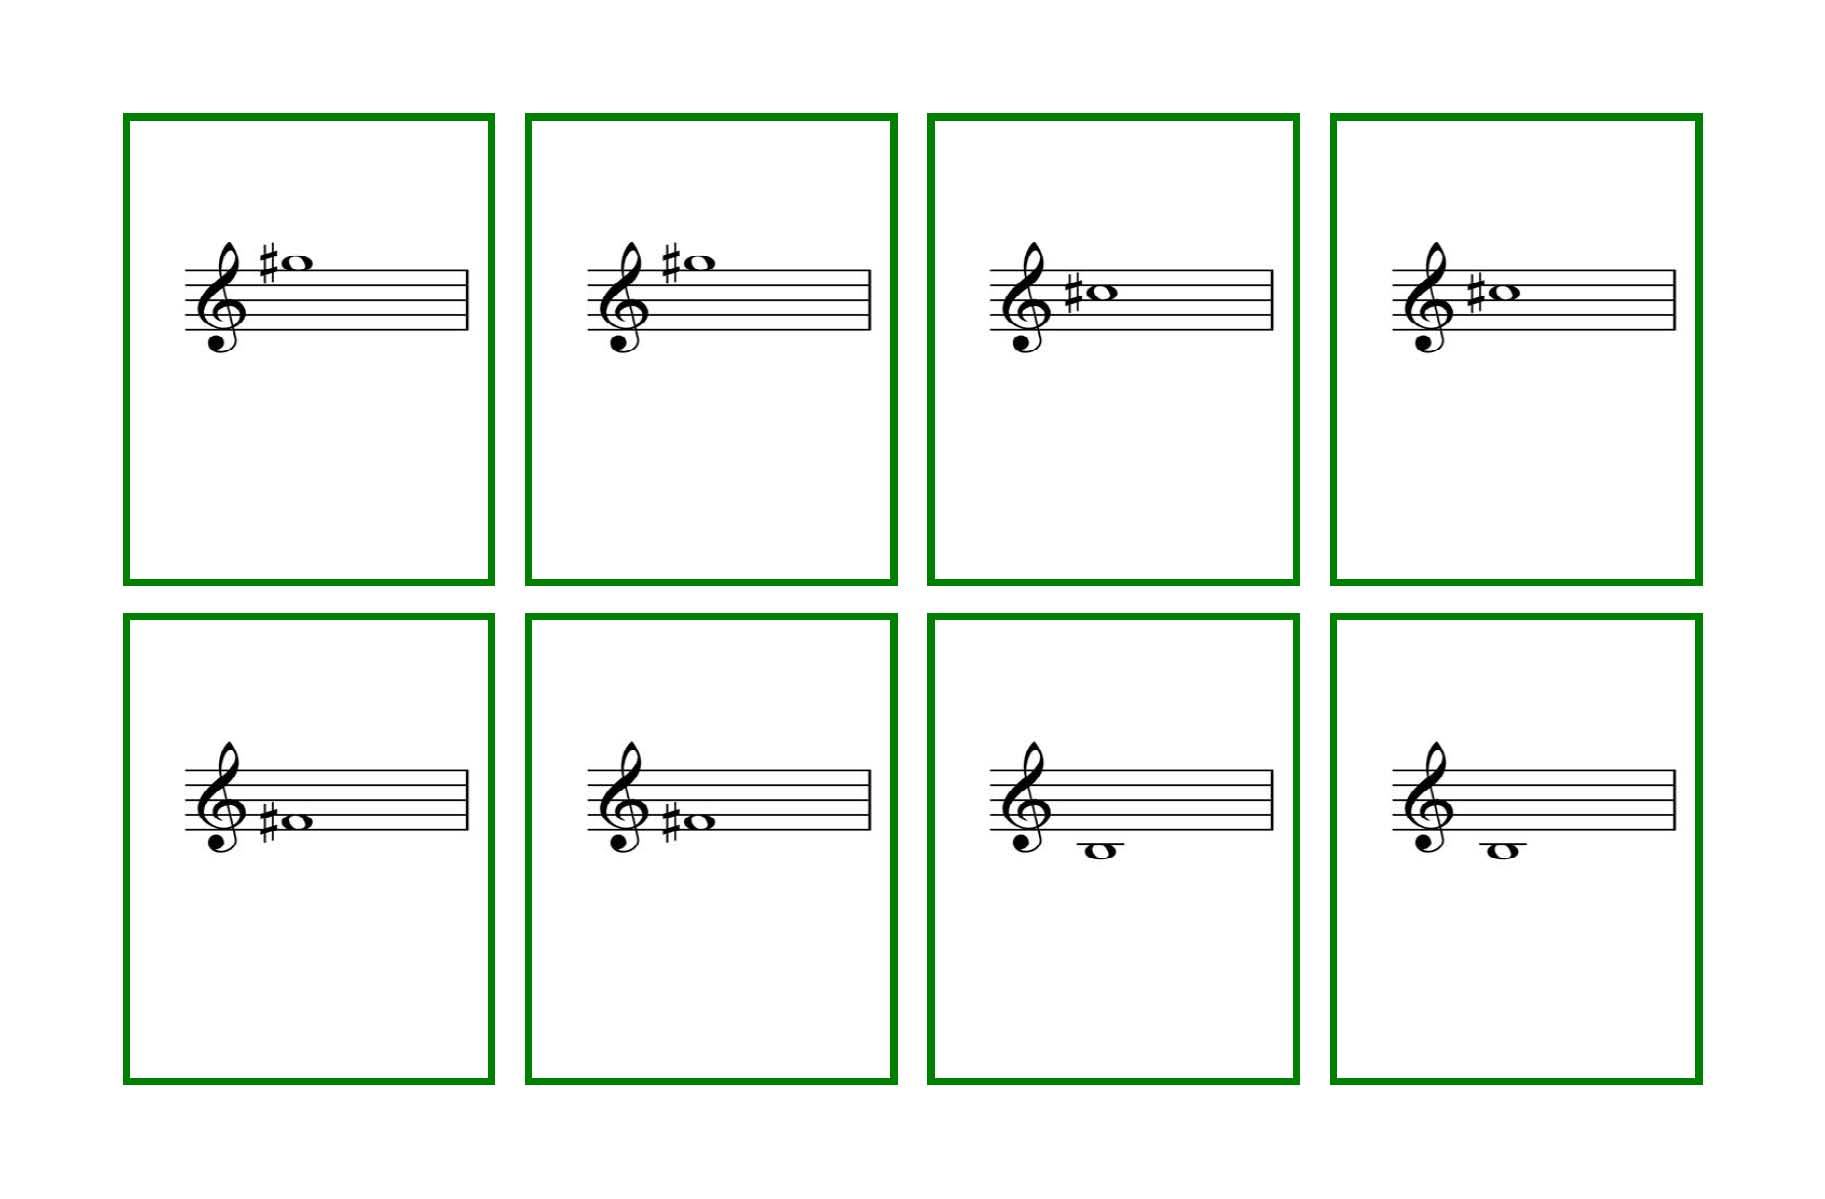 photo regarding Musical Note Flashcards Printable named 28 Piano Flash Playing cards toward Print